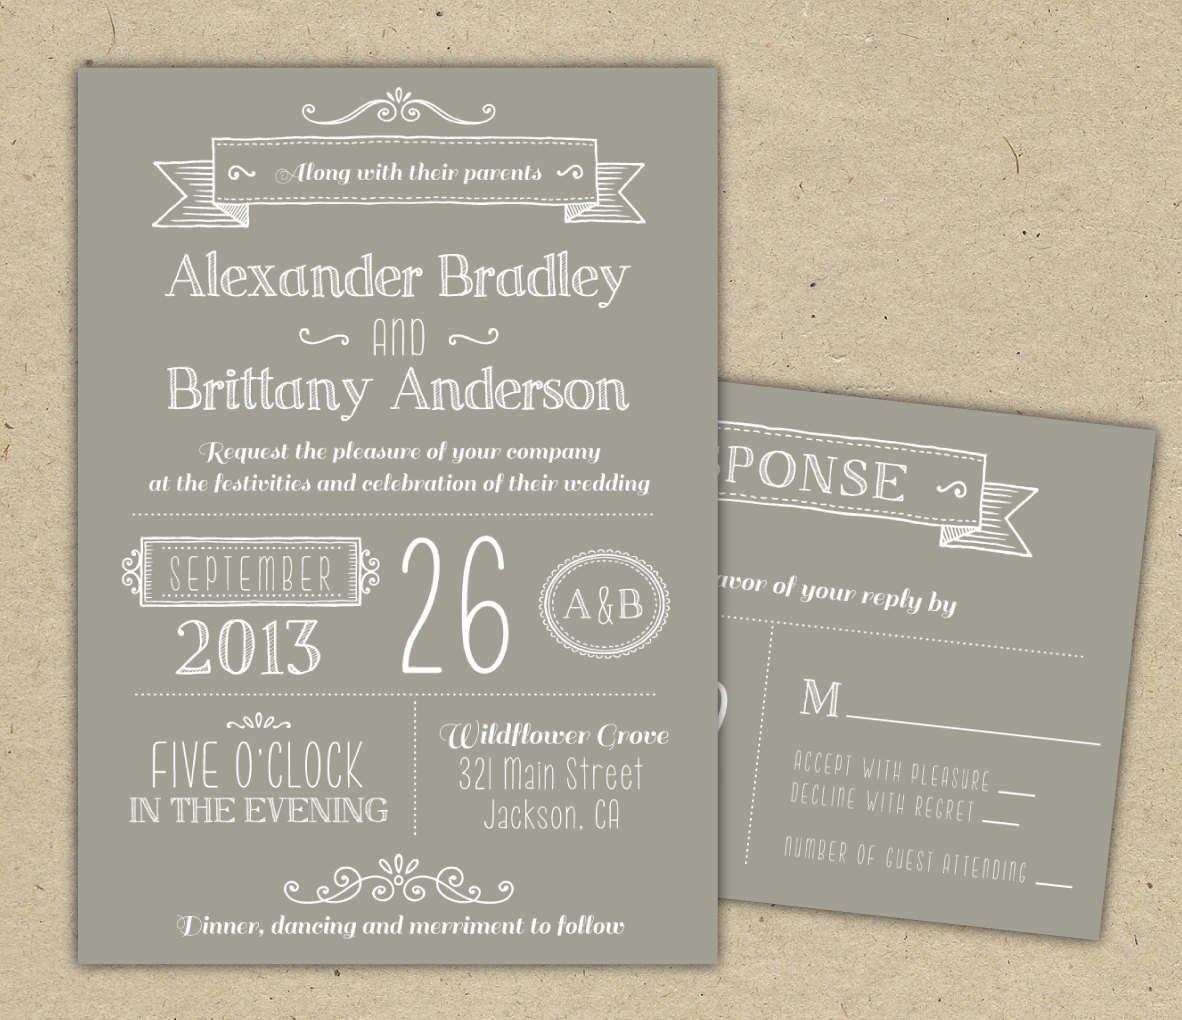 Wedding Invitations Free Printable Templates | Card Designs ...